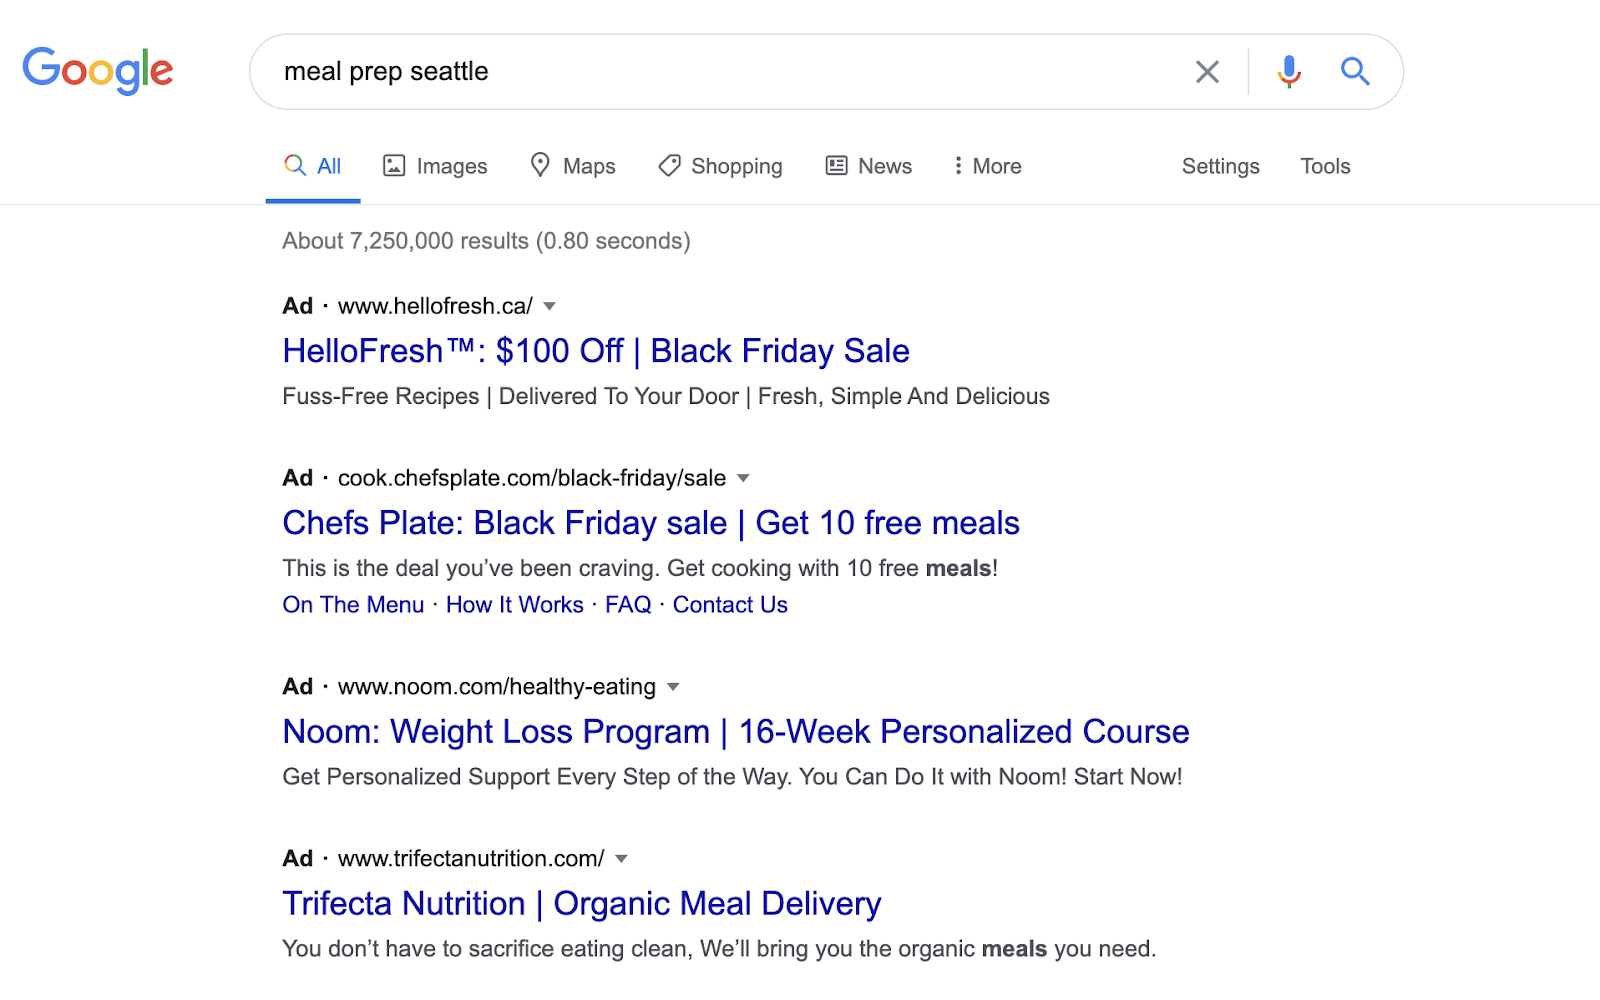 Google search results showing meal prep Seattle.